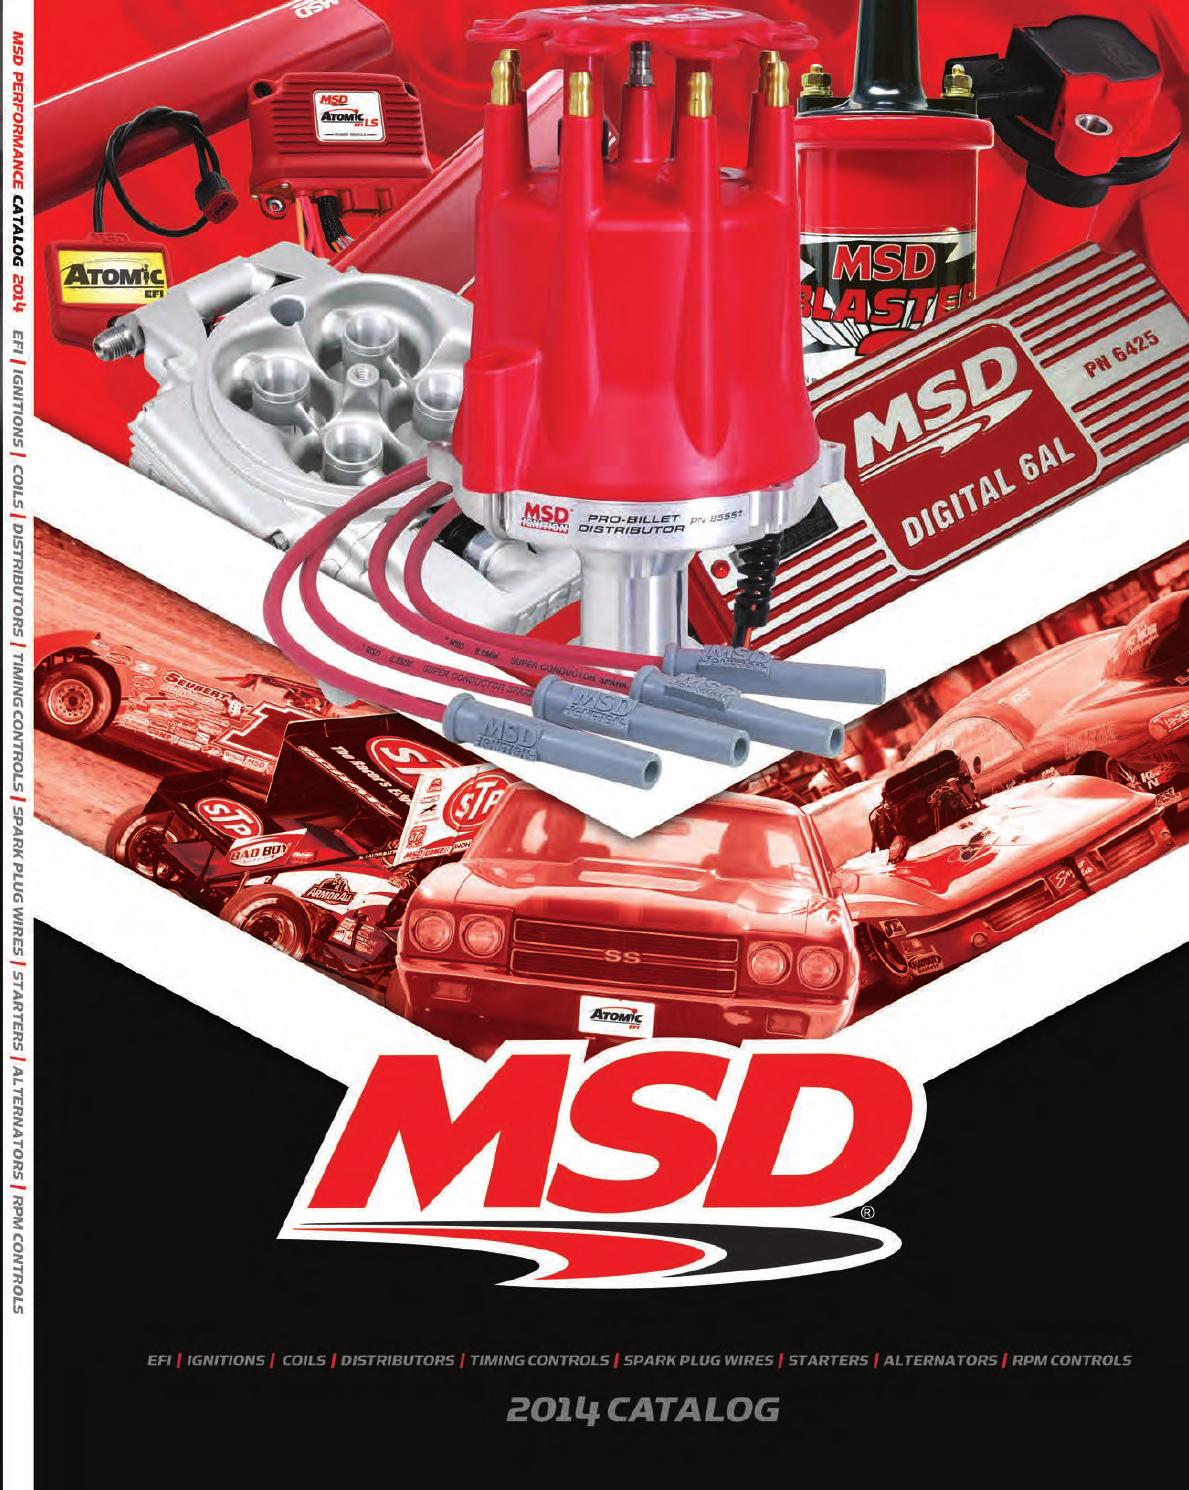 2014 msd catalog by TMeyer Inc - issuu